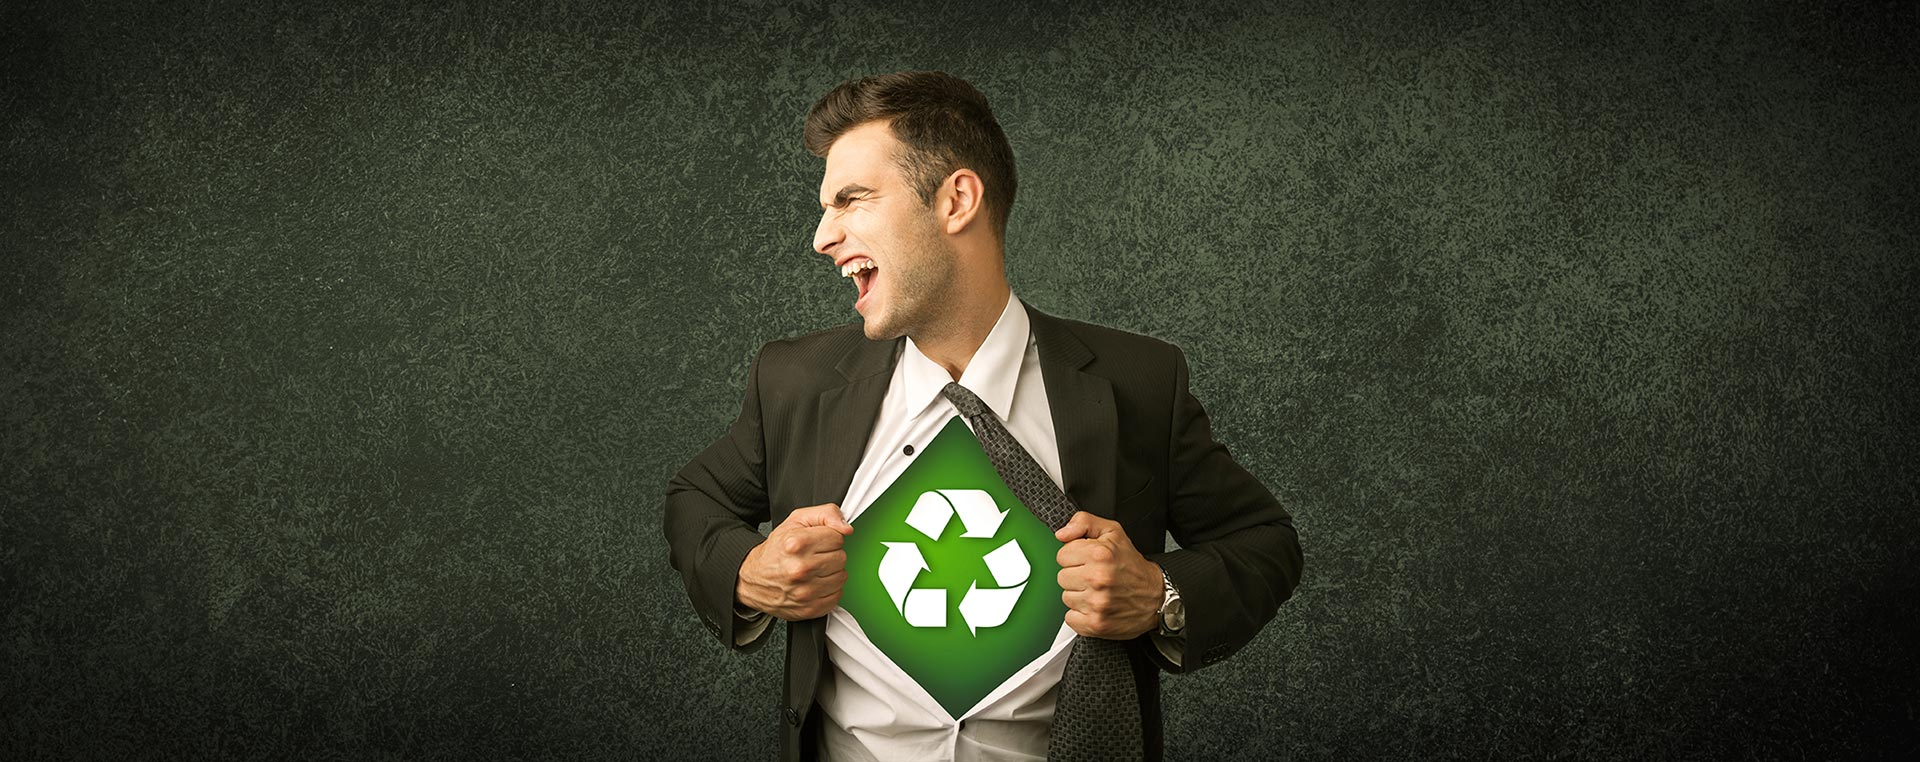 Head2ToeRecycling - Corporate Social Responsibility